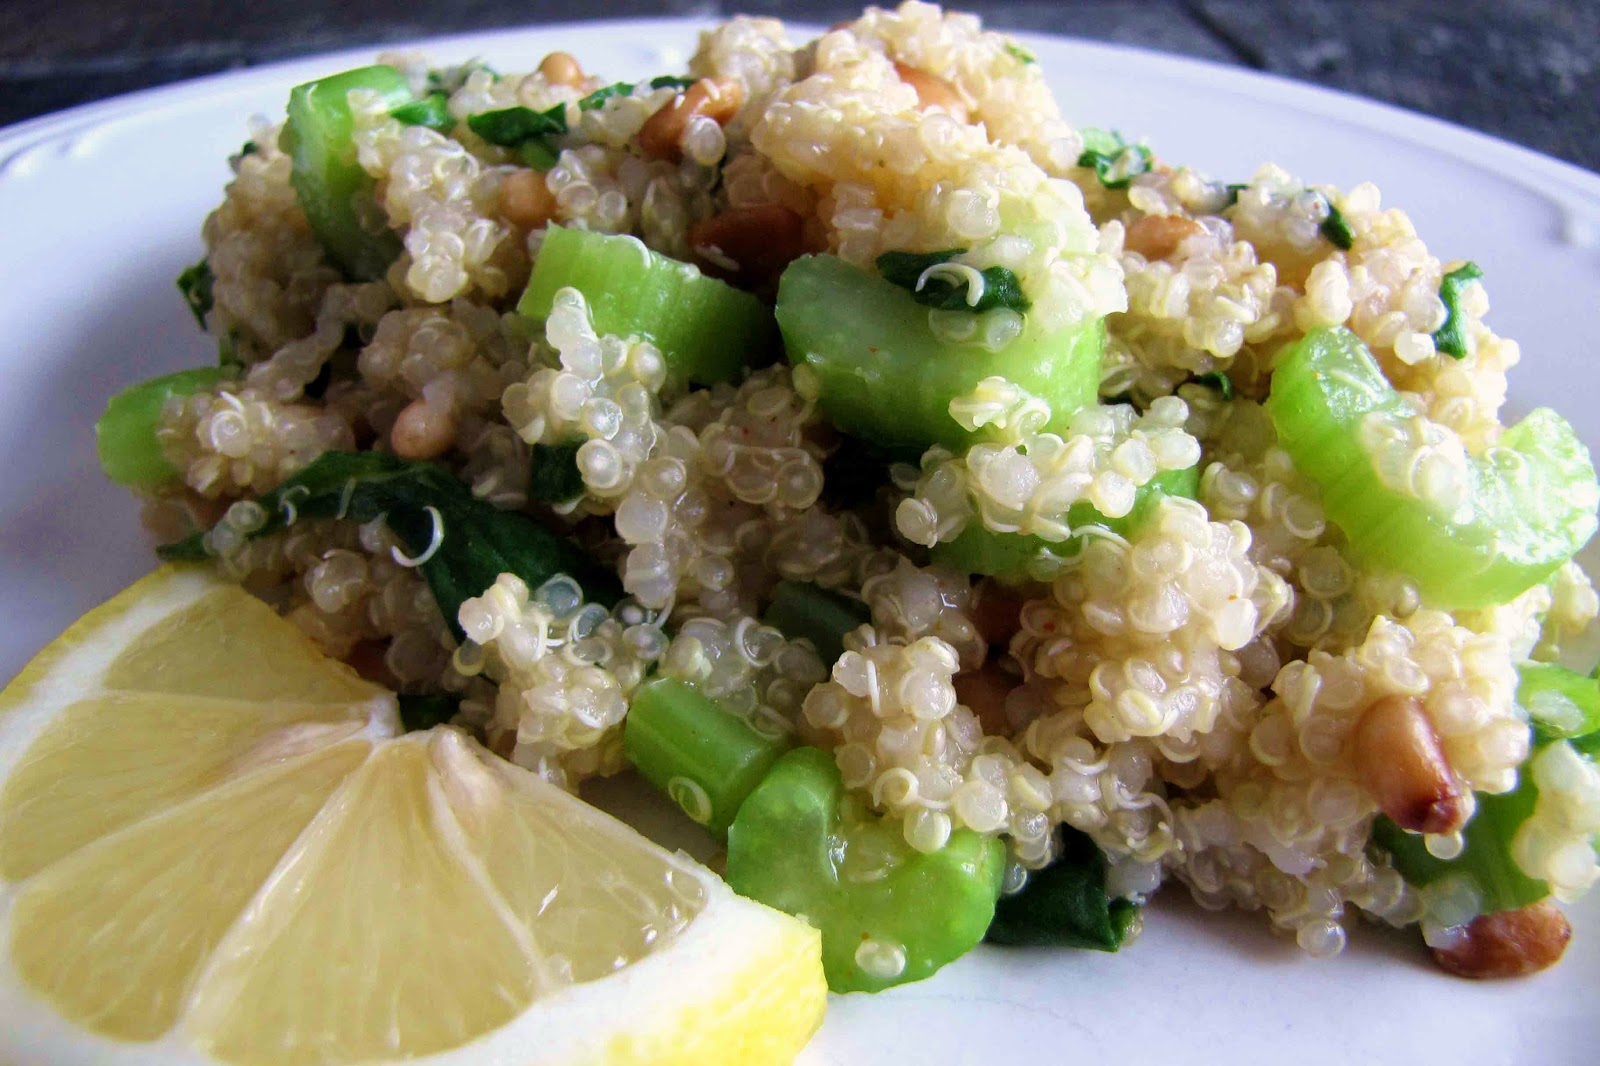 Lemony Quinoa with Spinach from Delicious as it Looks